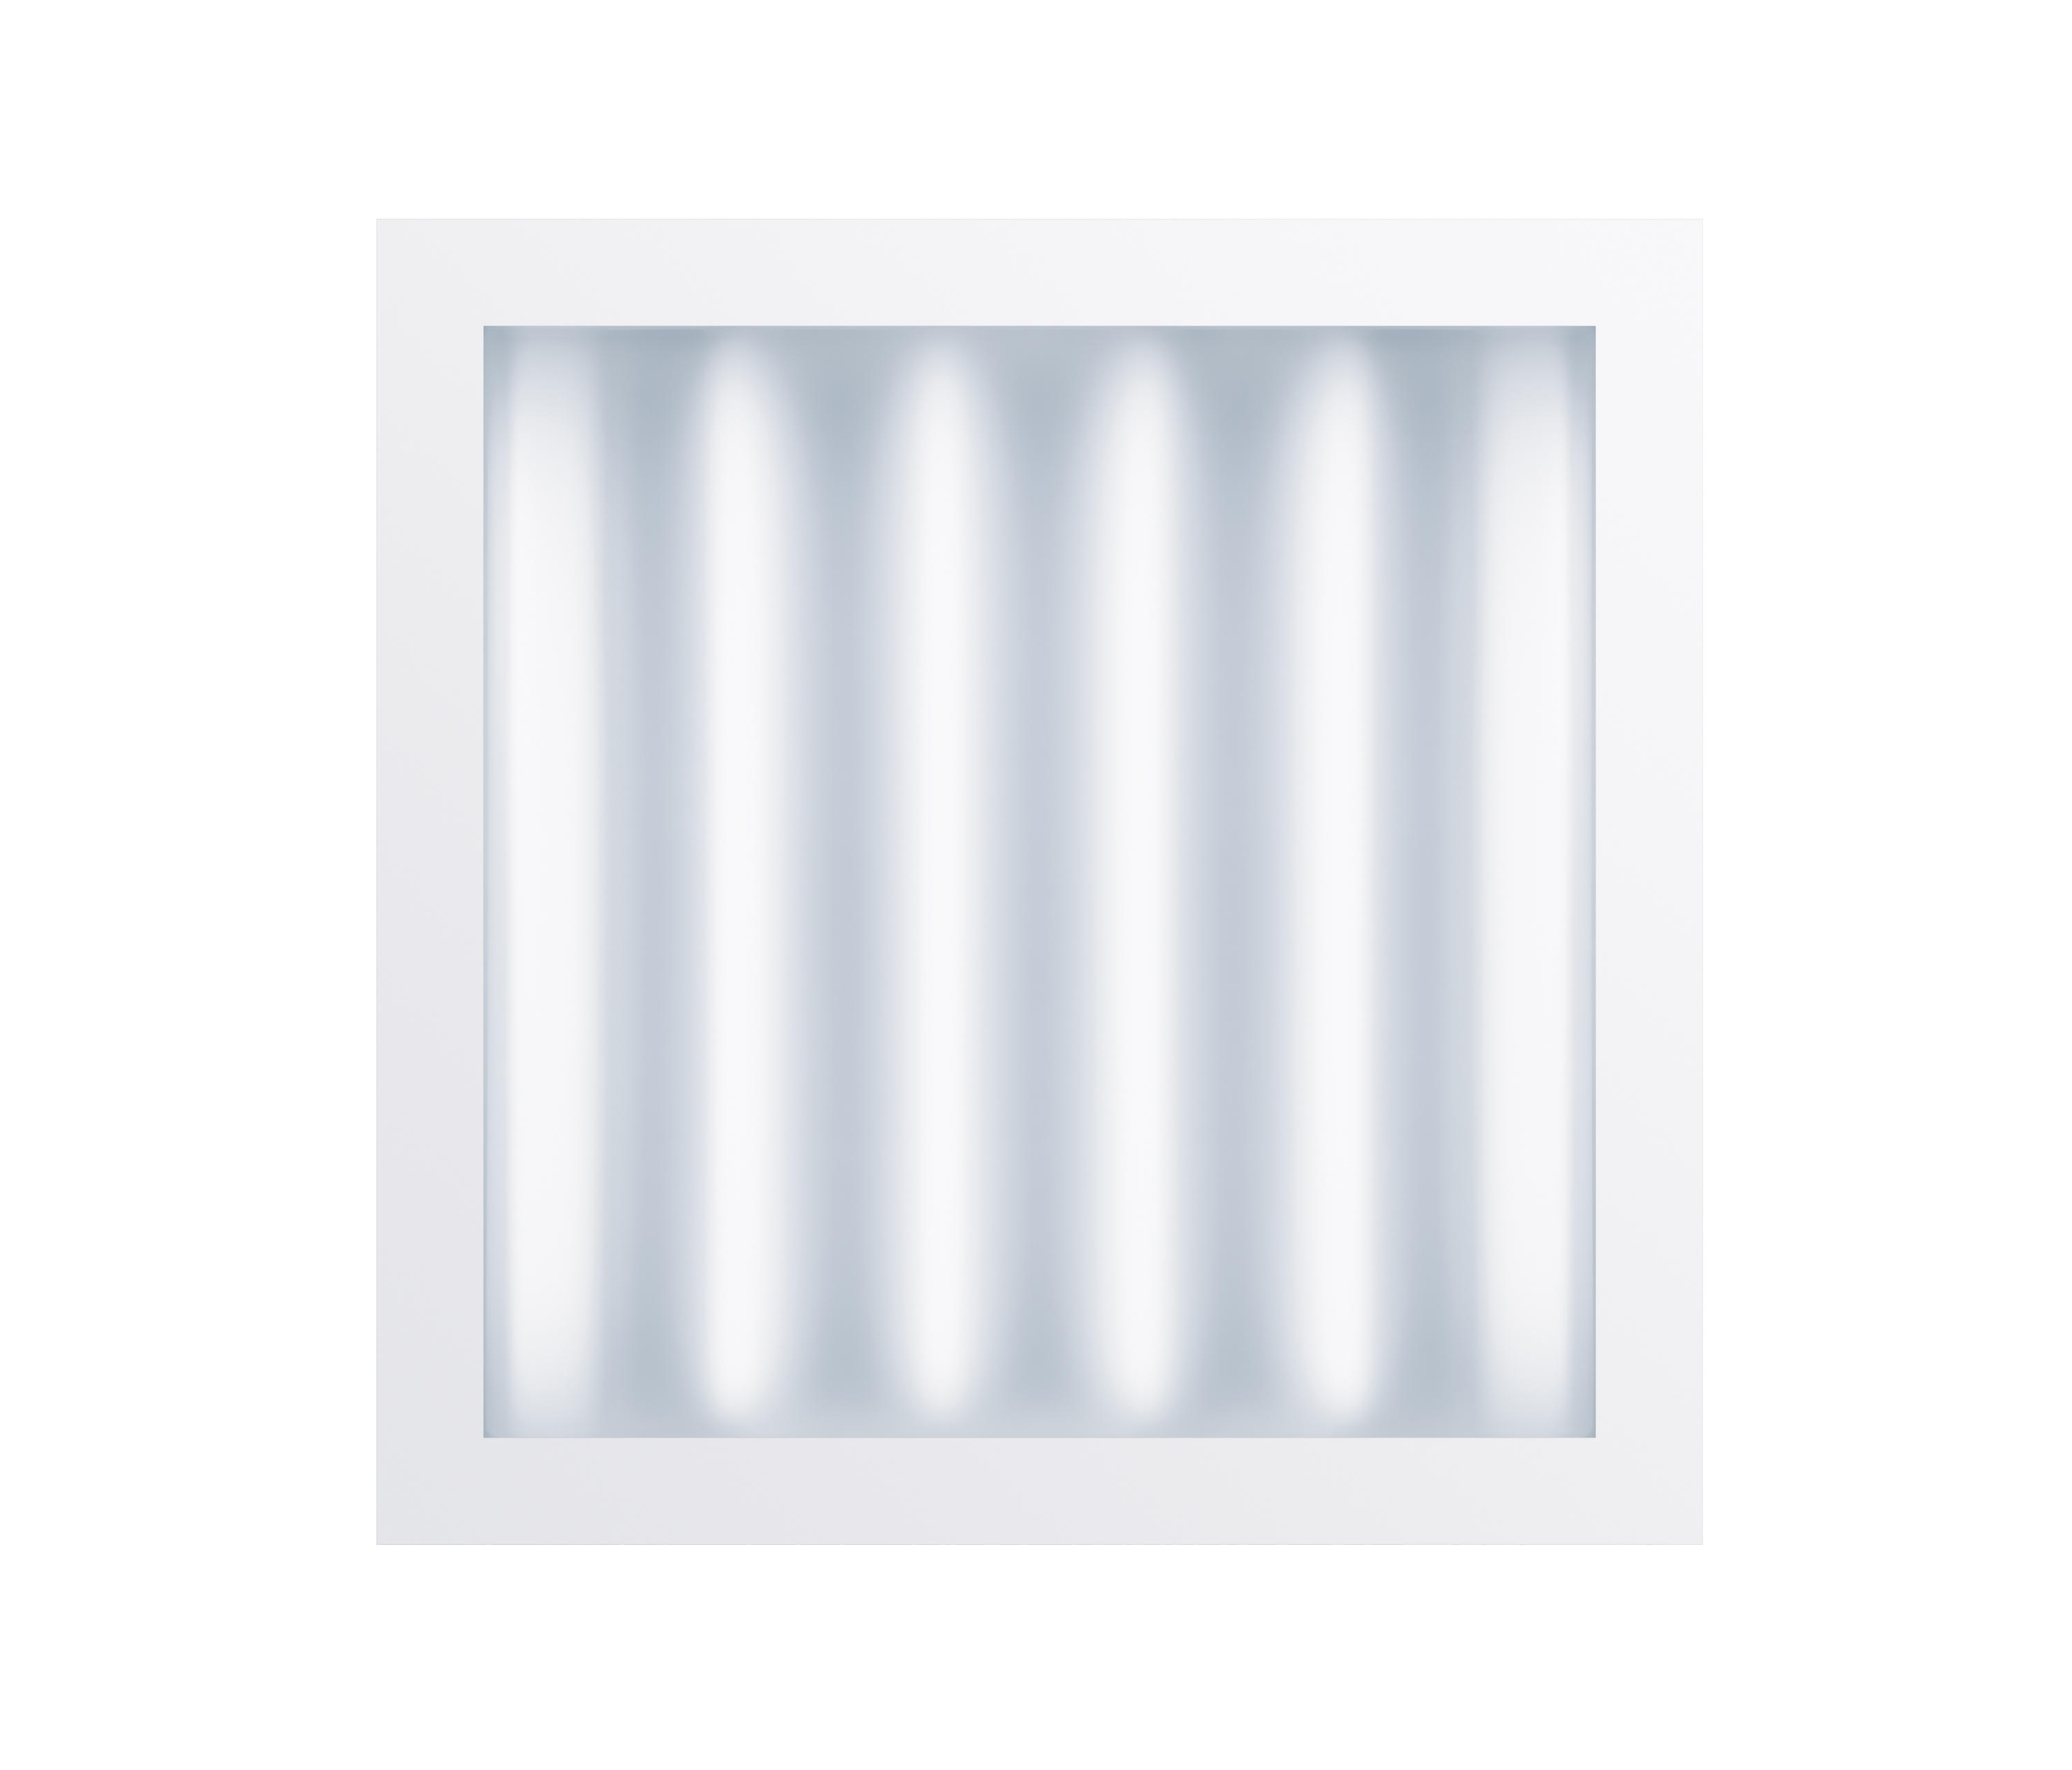 CLEAN ADVANCED LED - Ceiling lights from Zumtobel Lighting